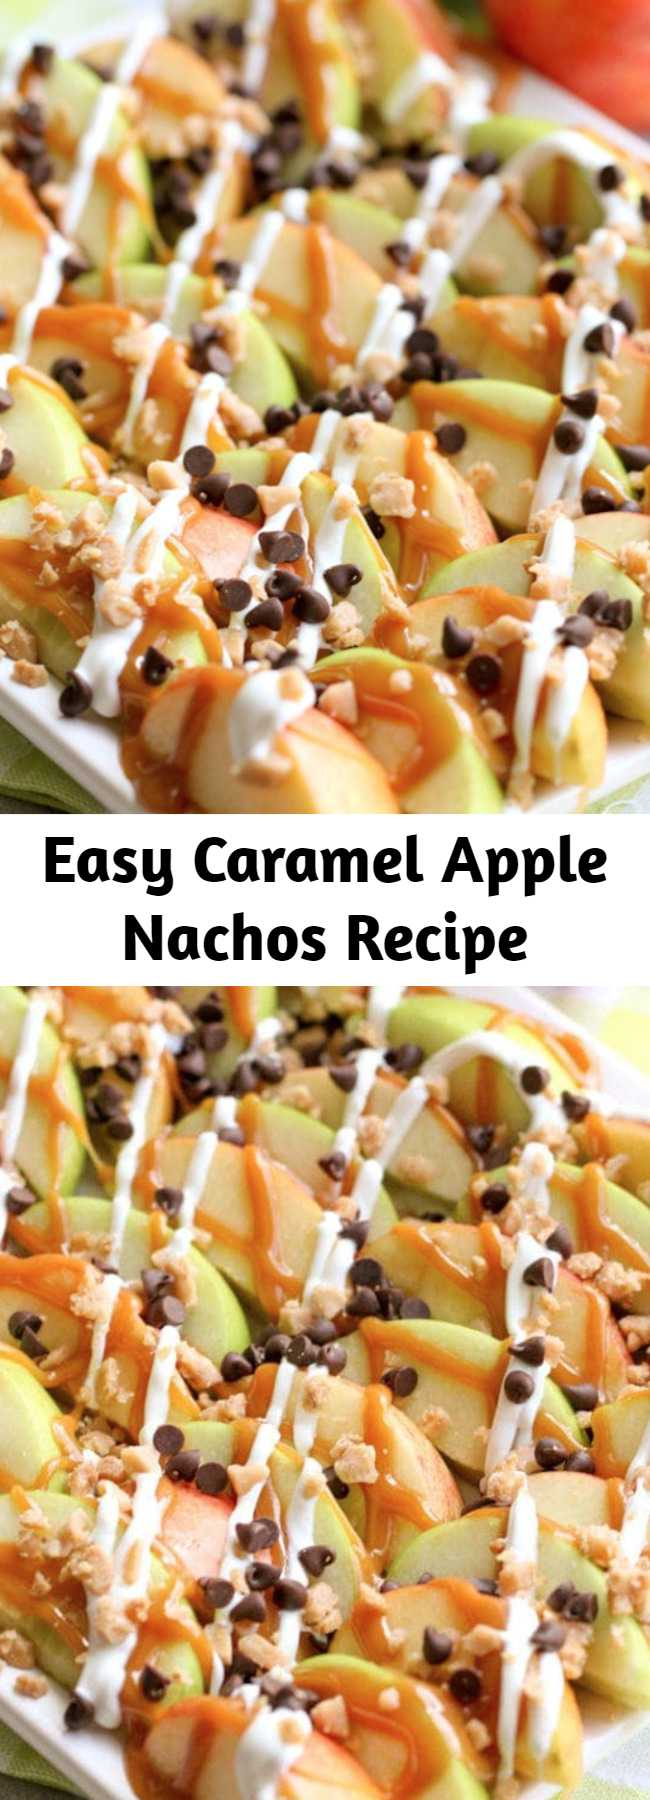 Easy Caramel Apple Nachos Recipe - These Caramel Apple Nachos are an easy treat perfect for movie nights and get togethers. Sliced apples drizzled in caramel and white chocolate, and topped with chocolate chips and toffee bits - it tastes just like a caramel apple, but simpler to make!